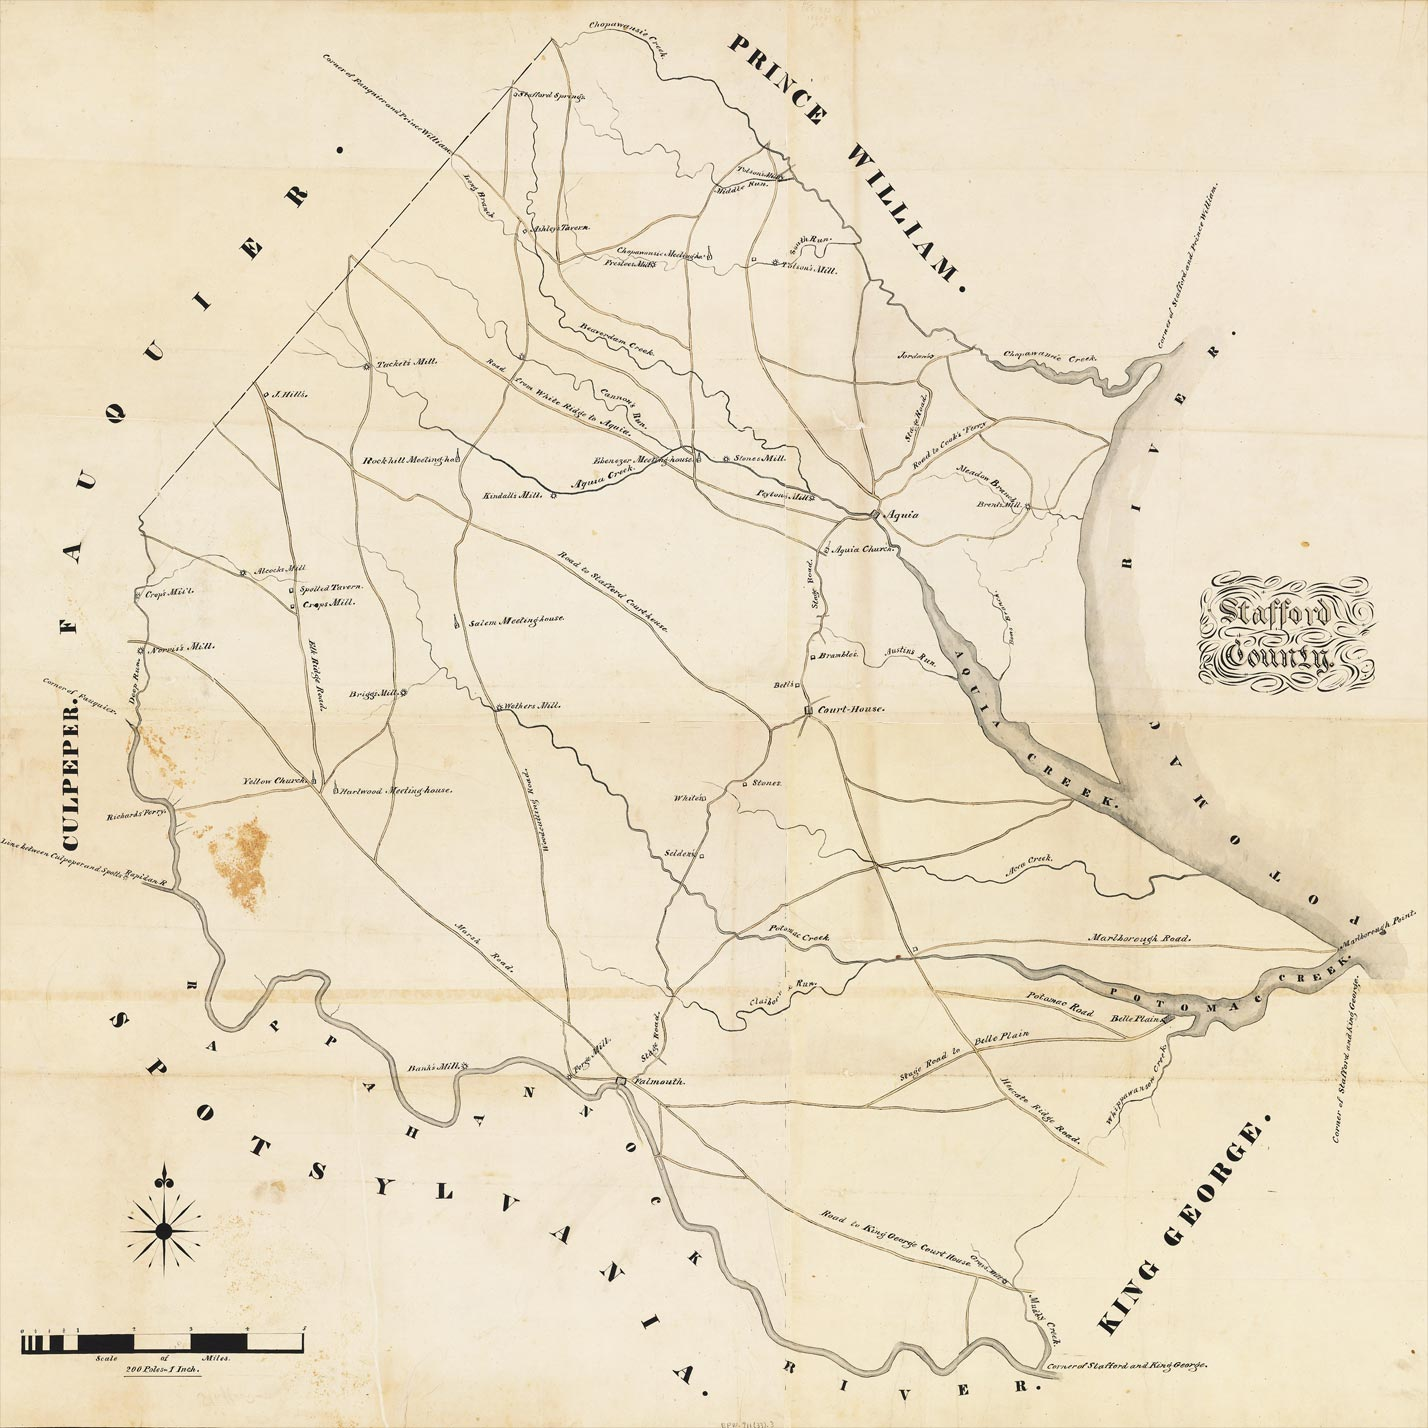 Stafford County Map c.1820